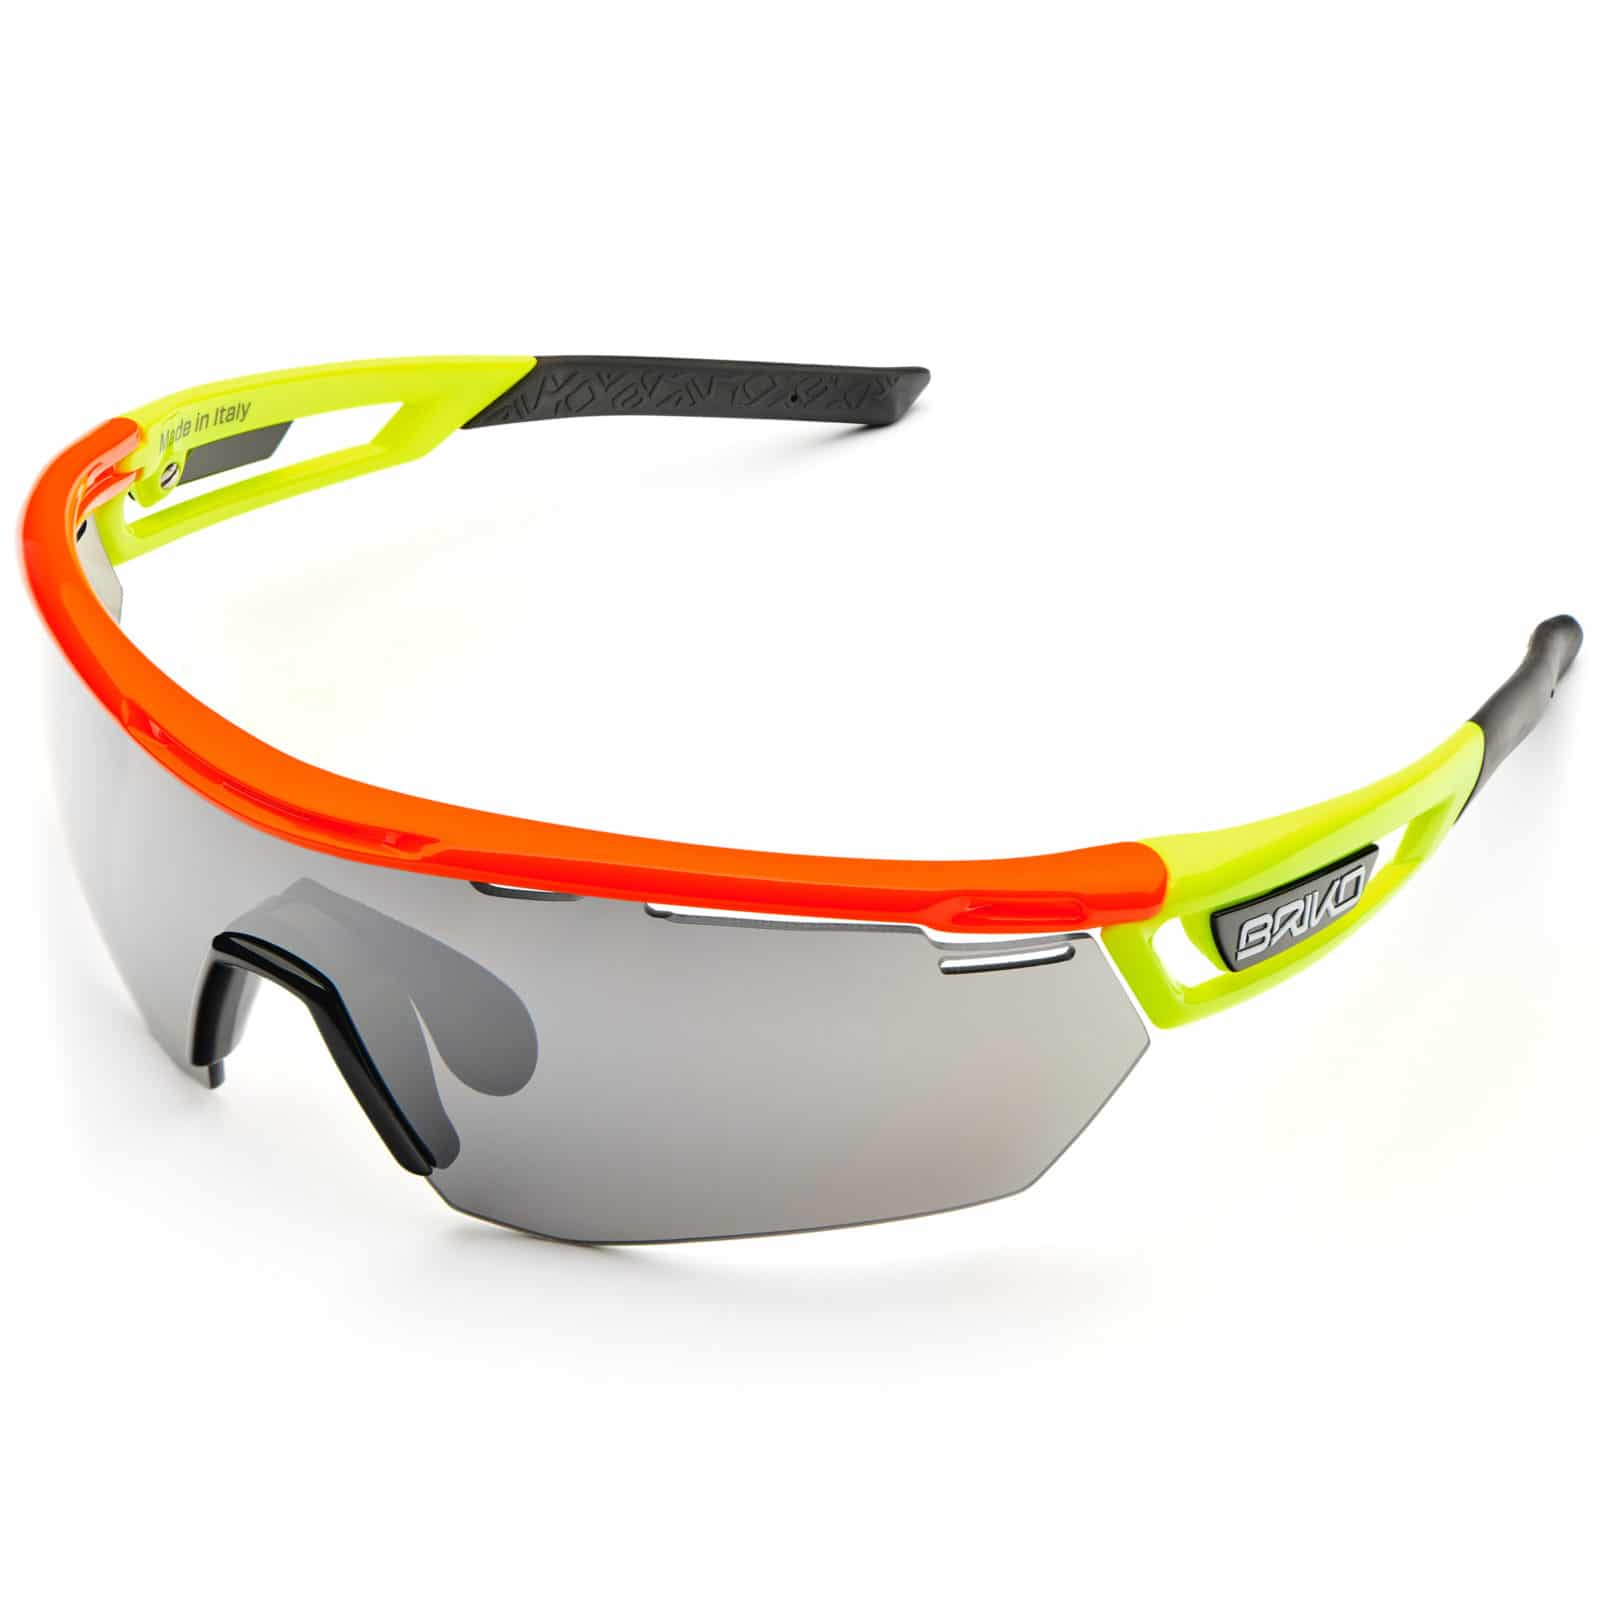 Cyclope –2 Lenses Fluo Org/Ylw/Blk